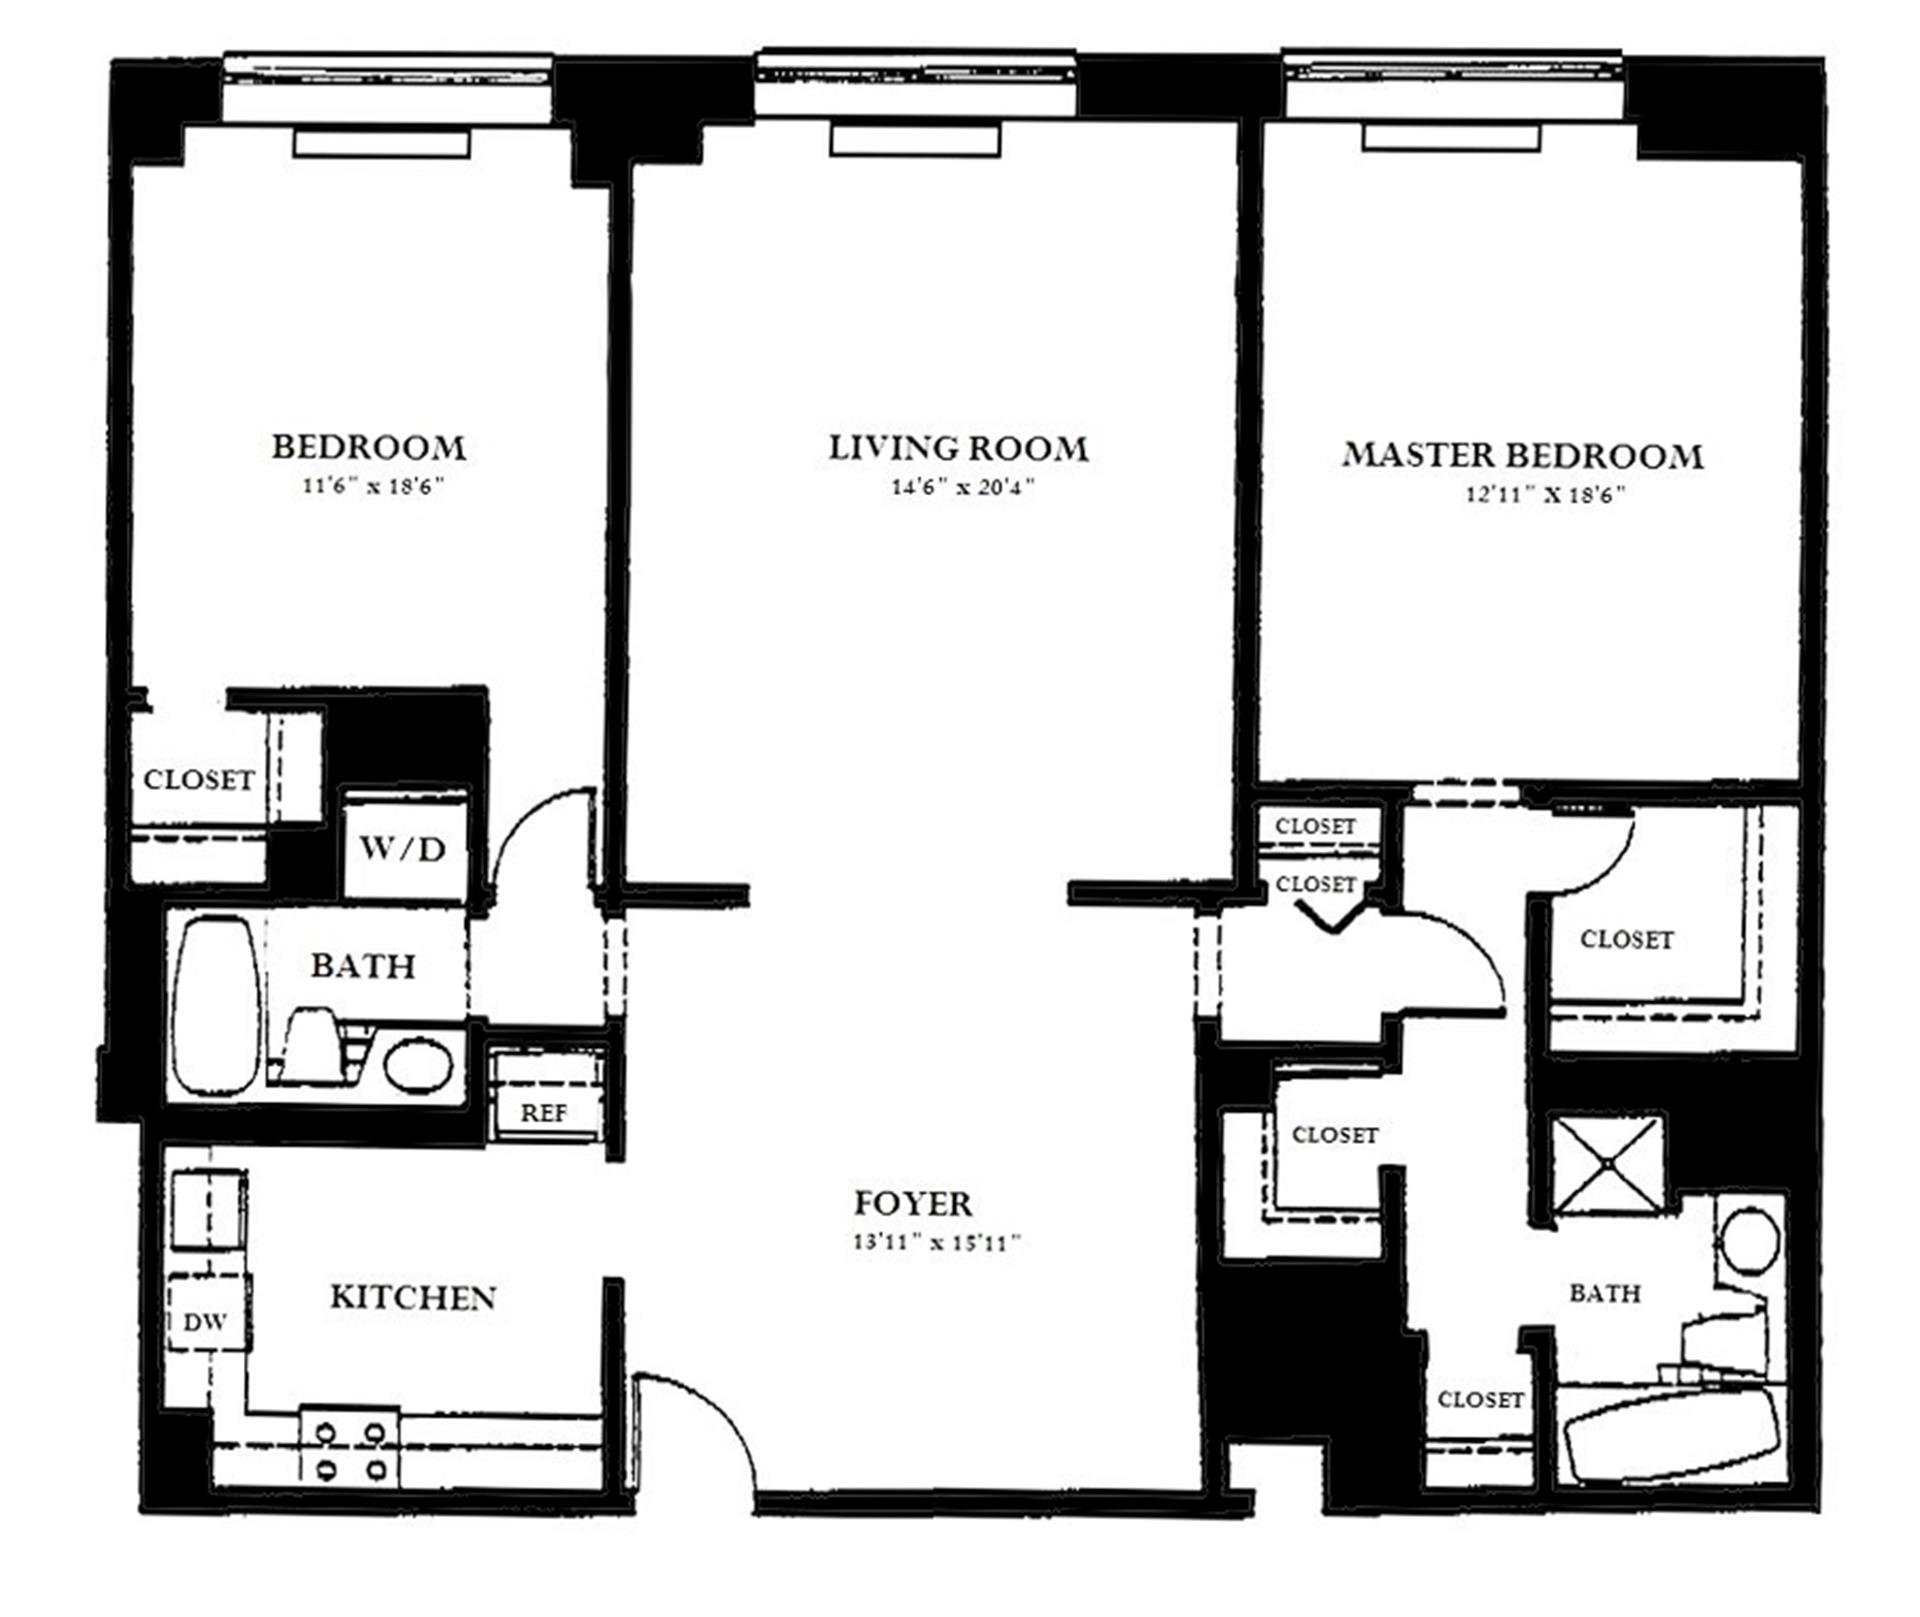 Floor plan of 120 East 87th St, P8B - Carnegie Hill, New York